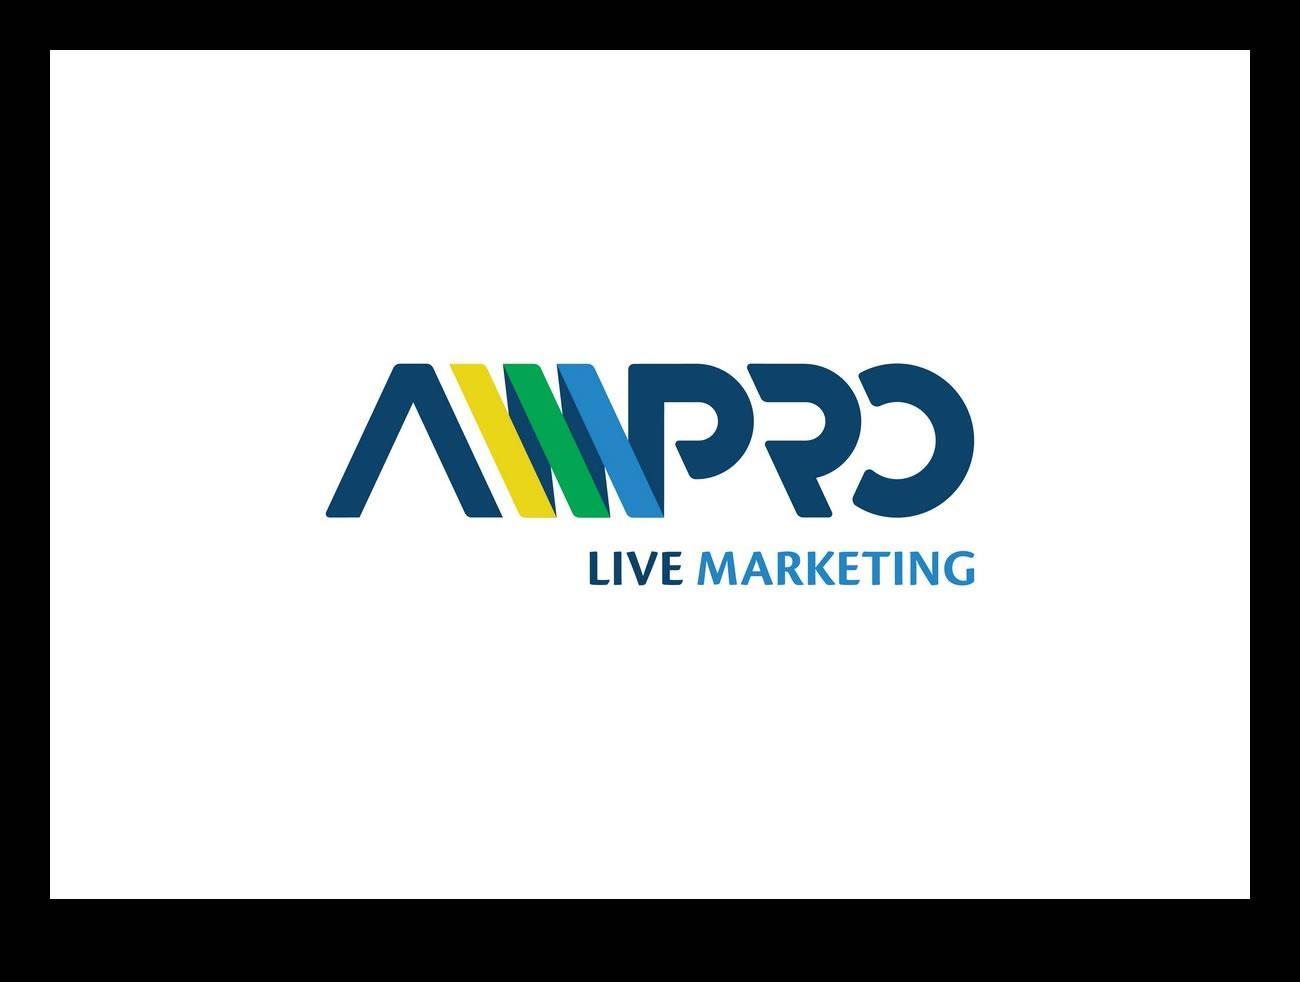 AMPRO lança primeiro curso online completo de Live Marketing